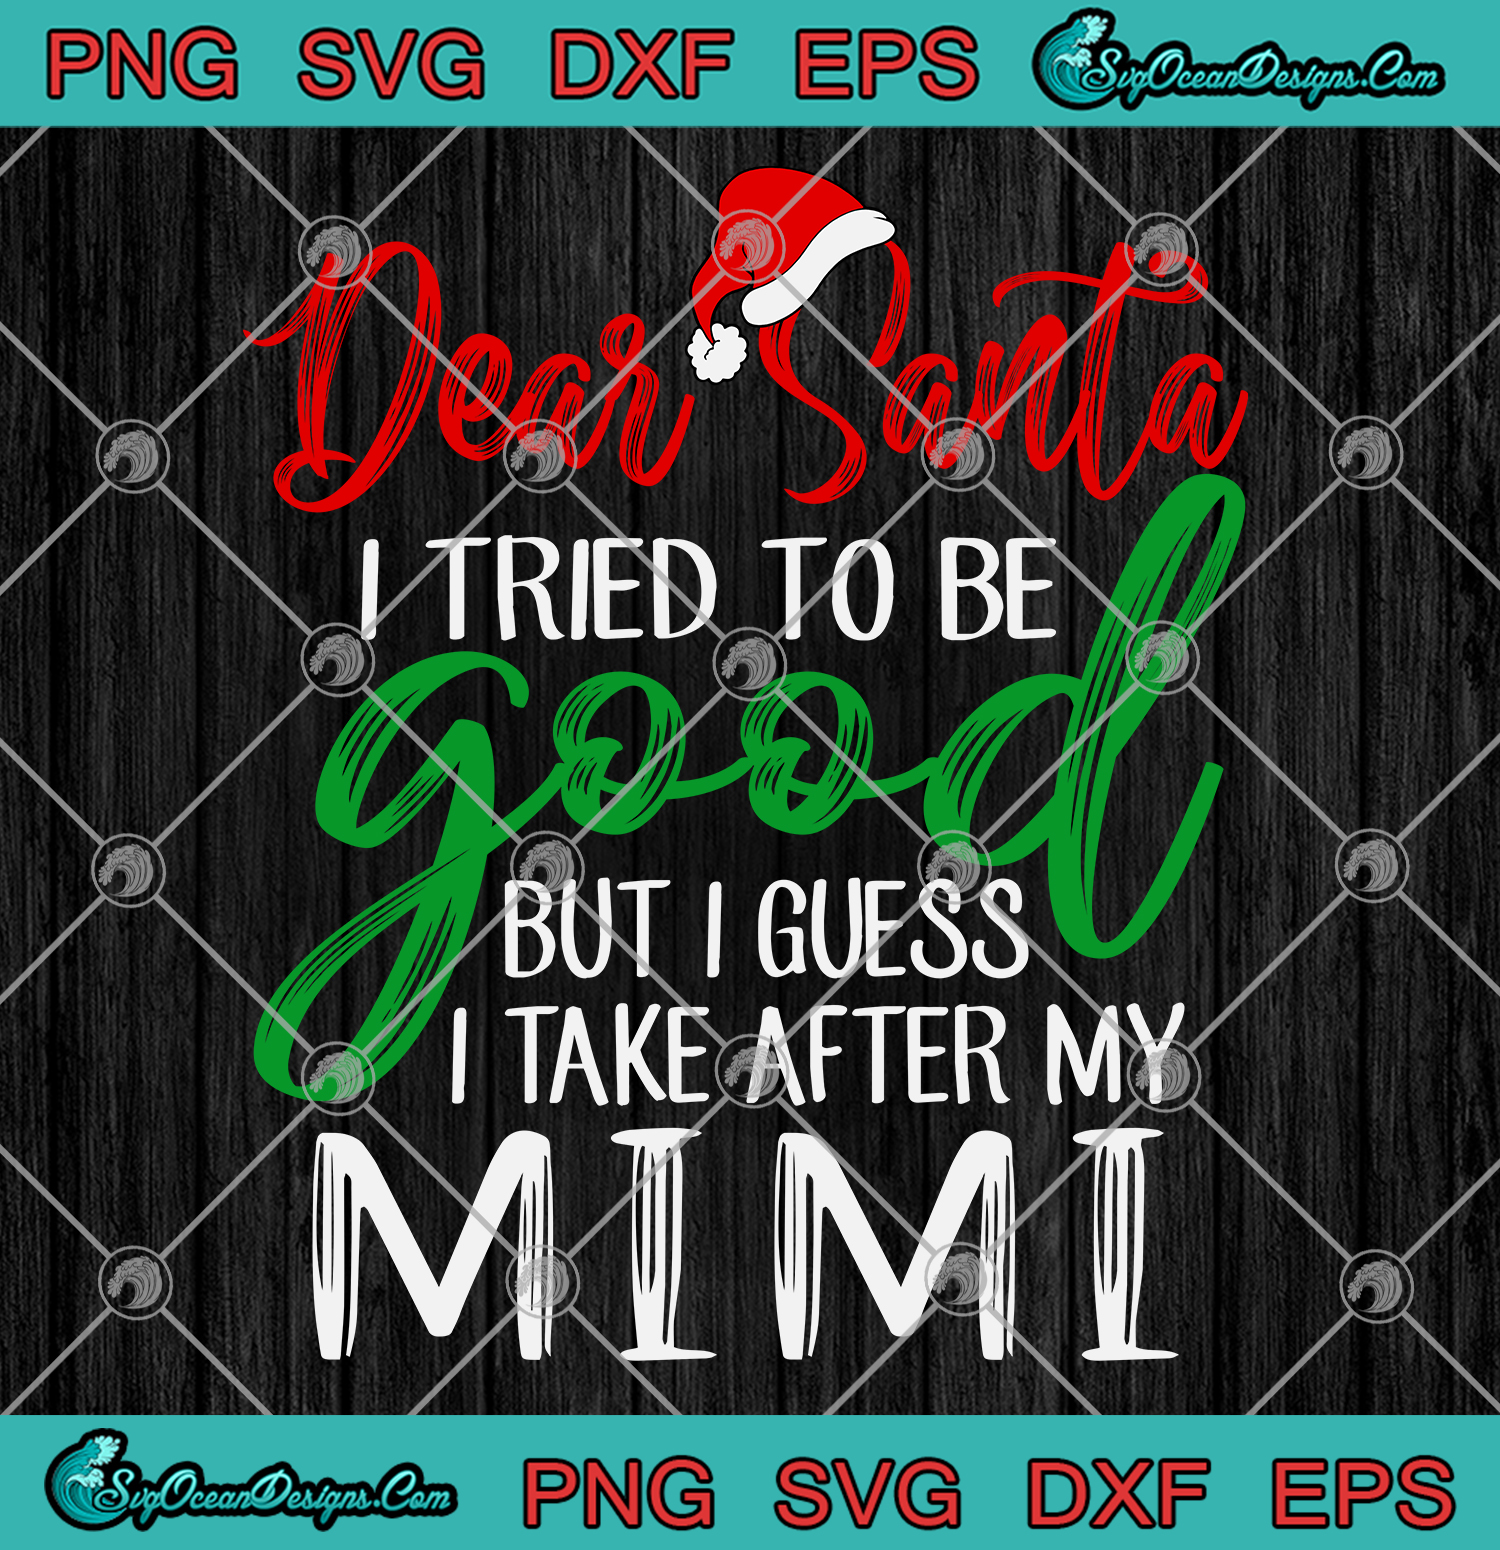 Dear Santa I Tried To Be Good But I Take After My Mimi Svg Png Eps Dxf Mimi Christmas Cricut Silhouette Cameo Svg Designs Digital Download